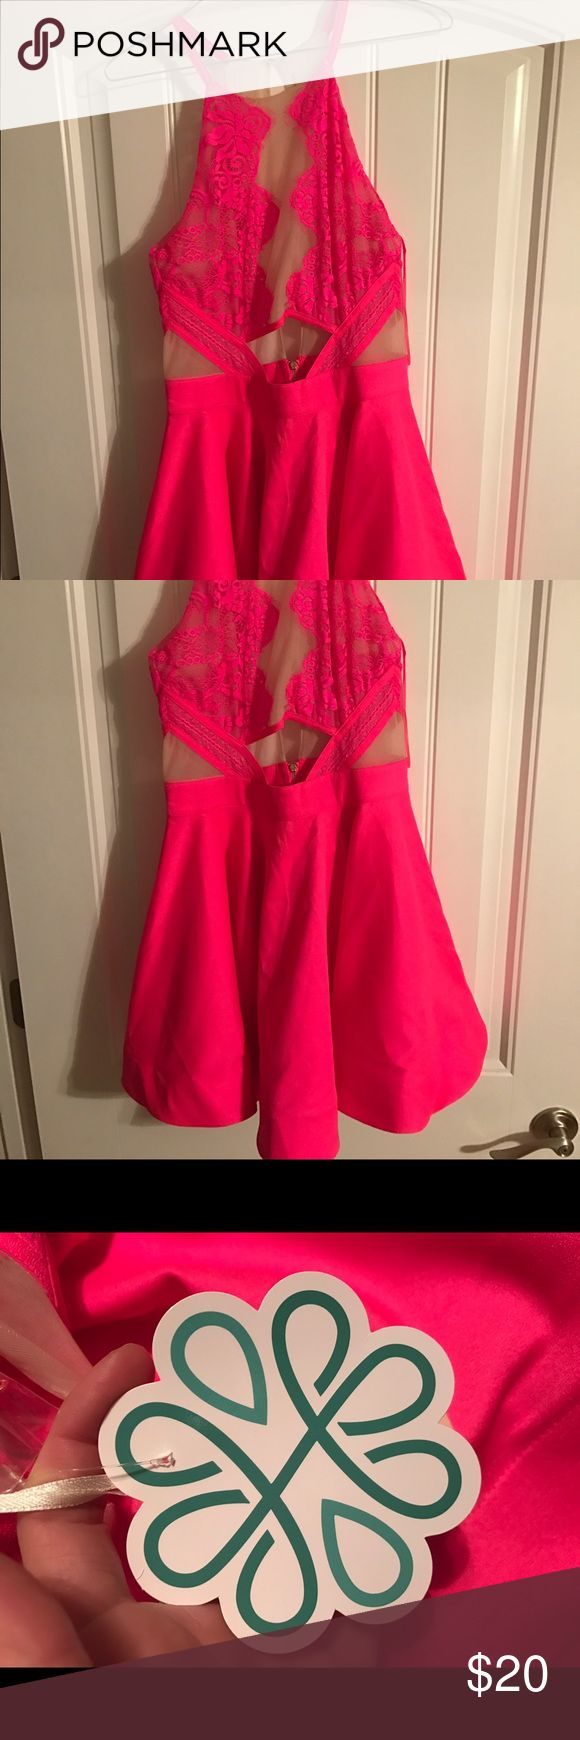 Shop Hope's Dress. Brand new with tags. Neon pink dress. Size M. Beautiful. Make an offer. Price negotiable. Dresses Mini